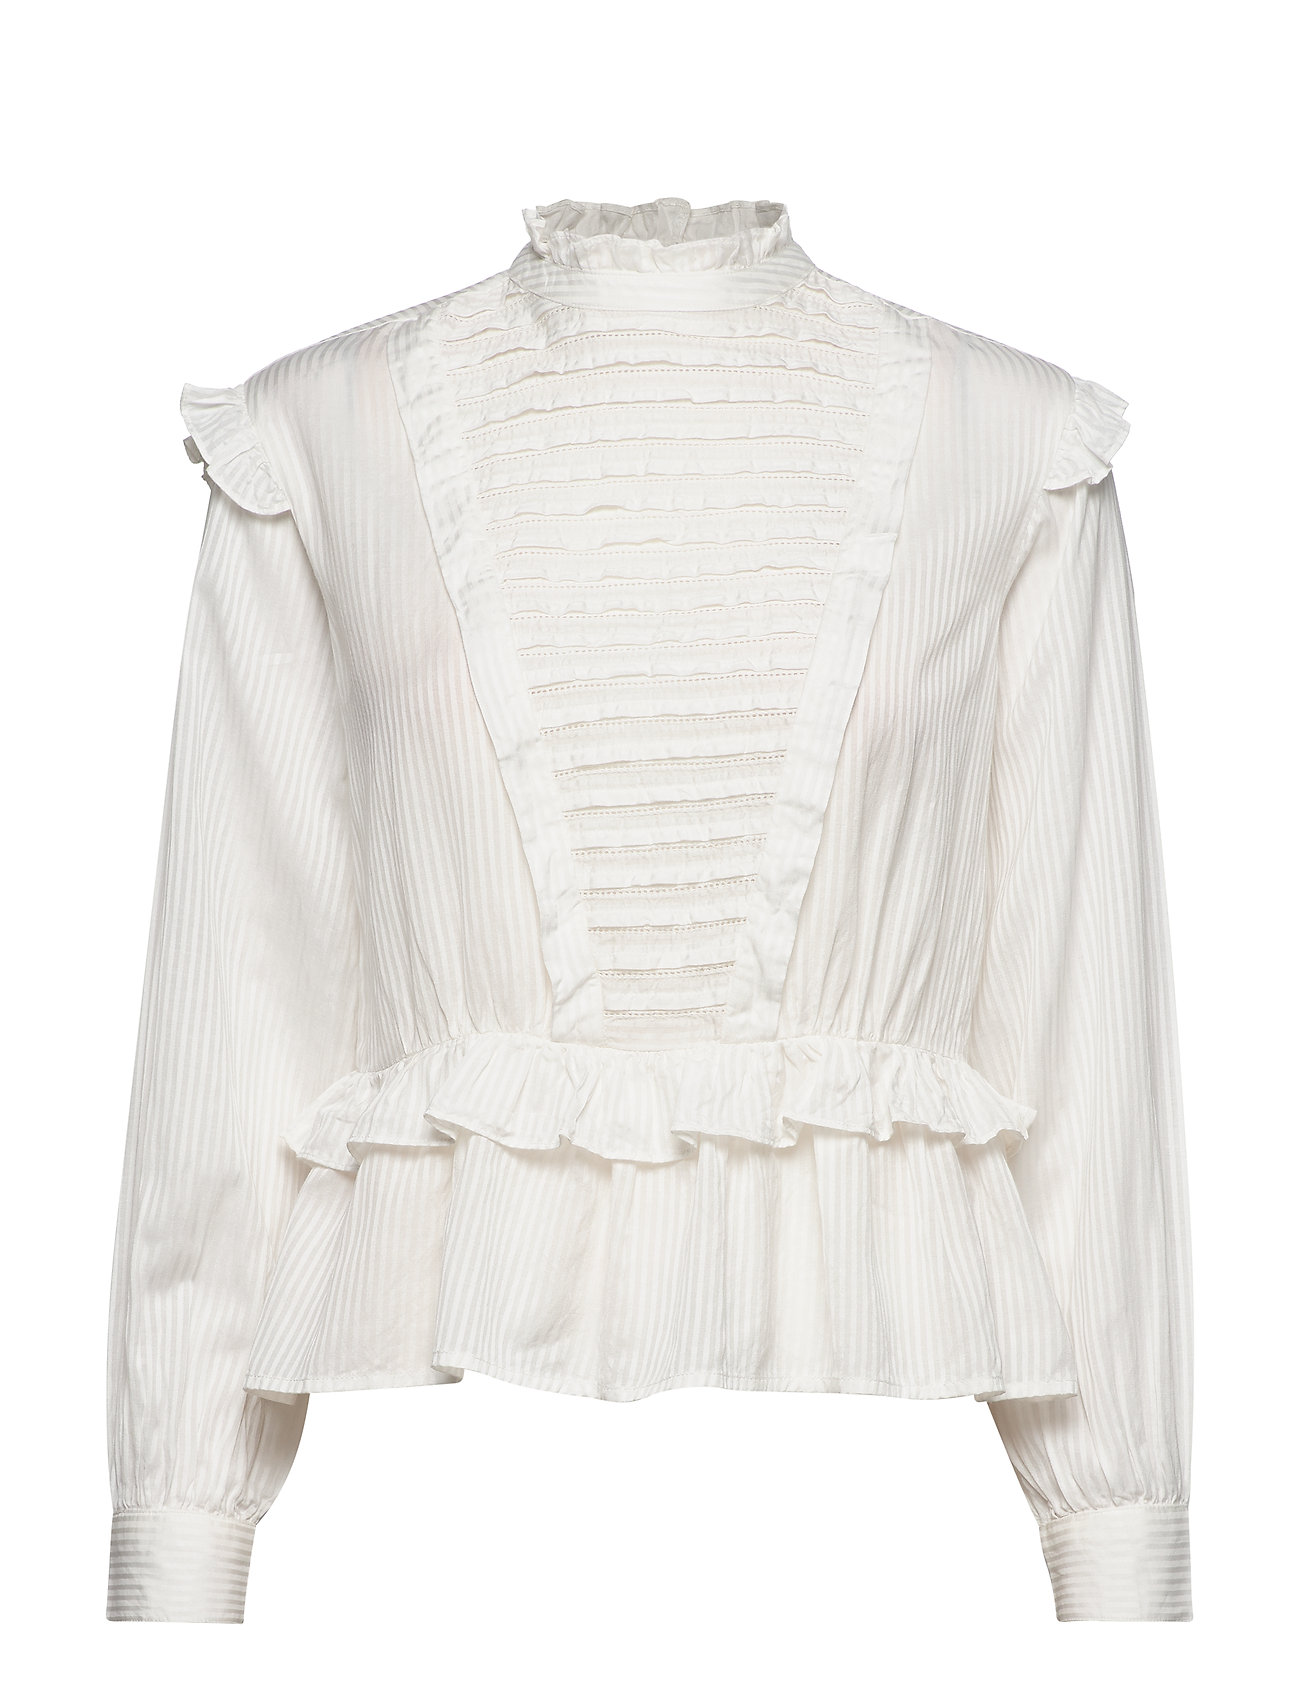 Scotch & Soda Top with ruffles and ladder details - OFF WHITE